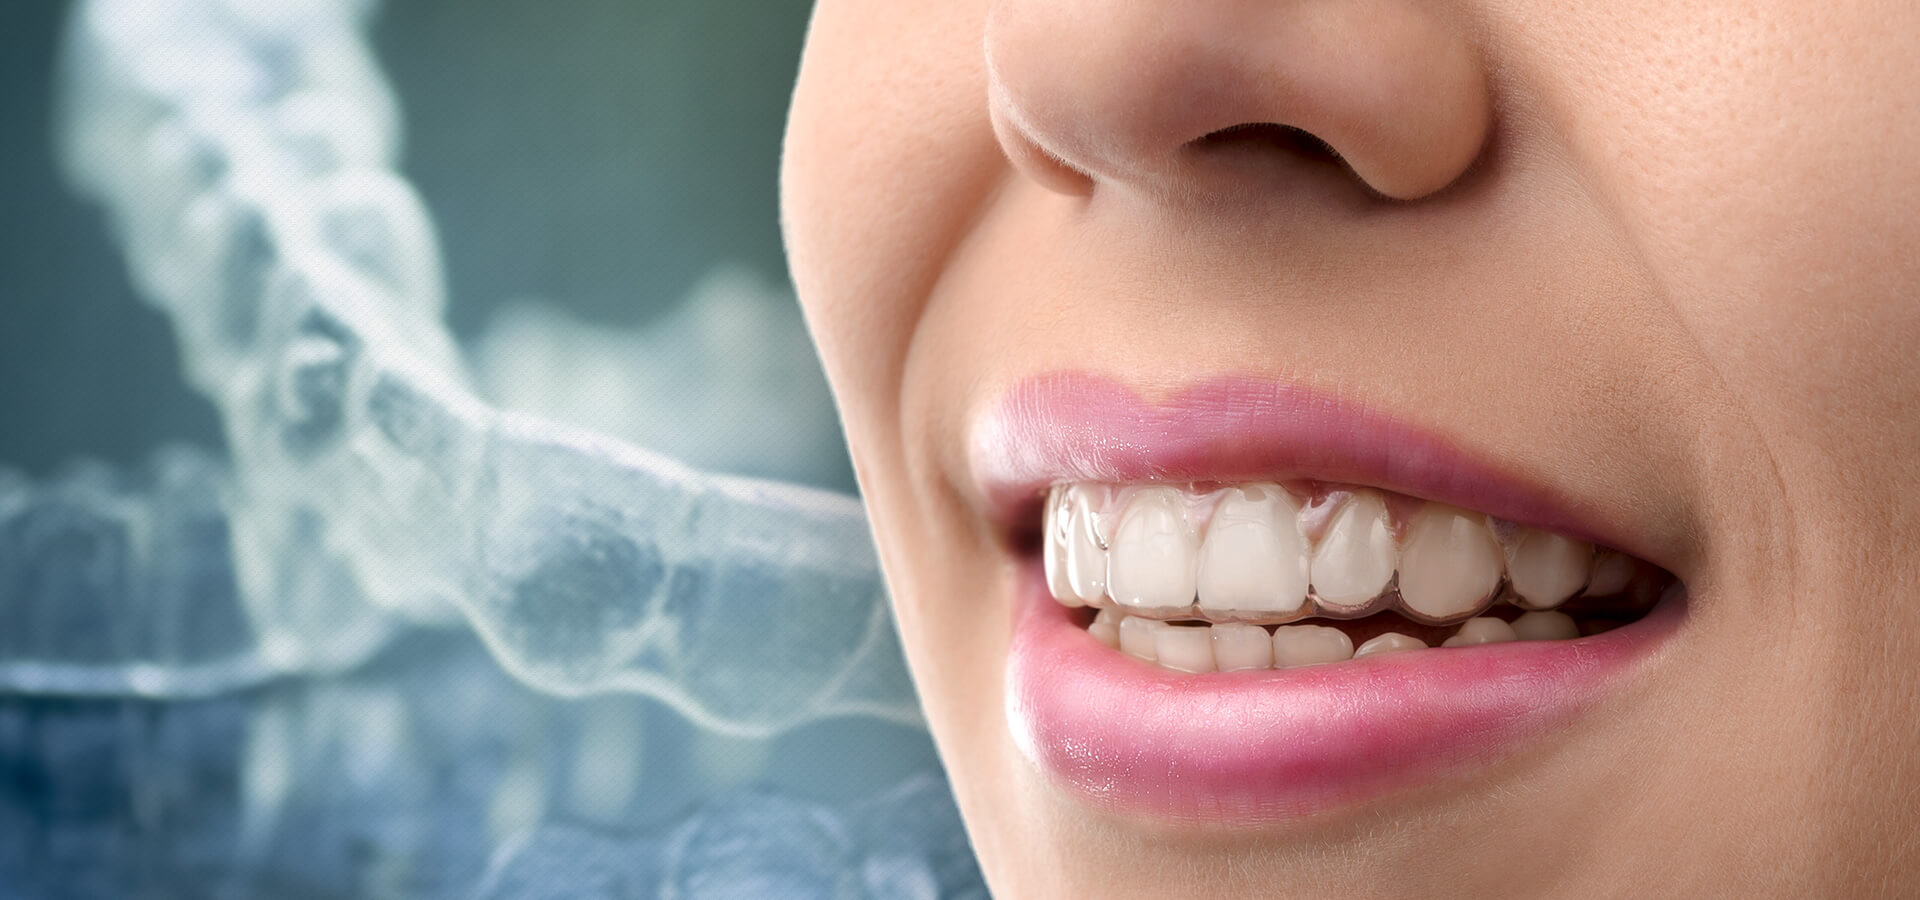 Close-up on Woman's Teeth in Invisalign Clear Aligners